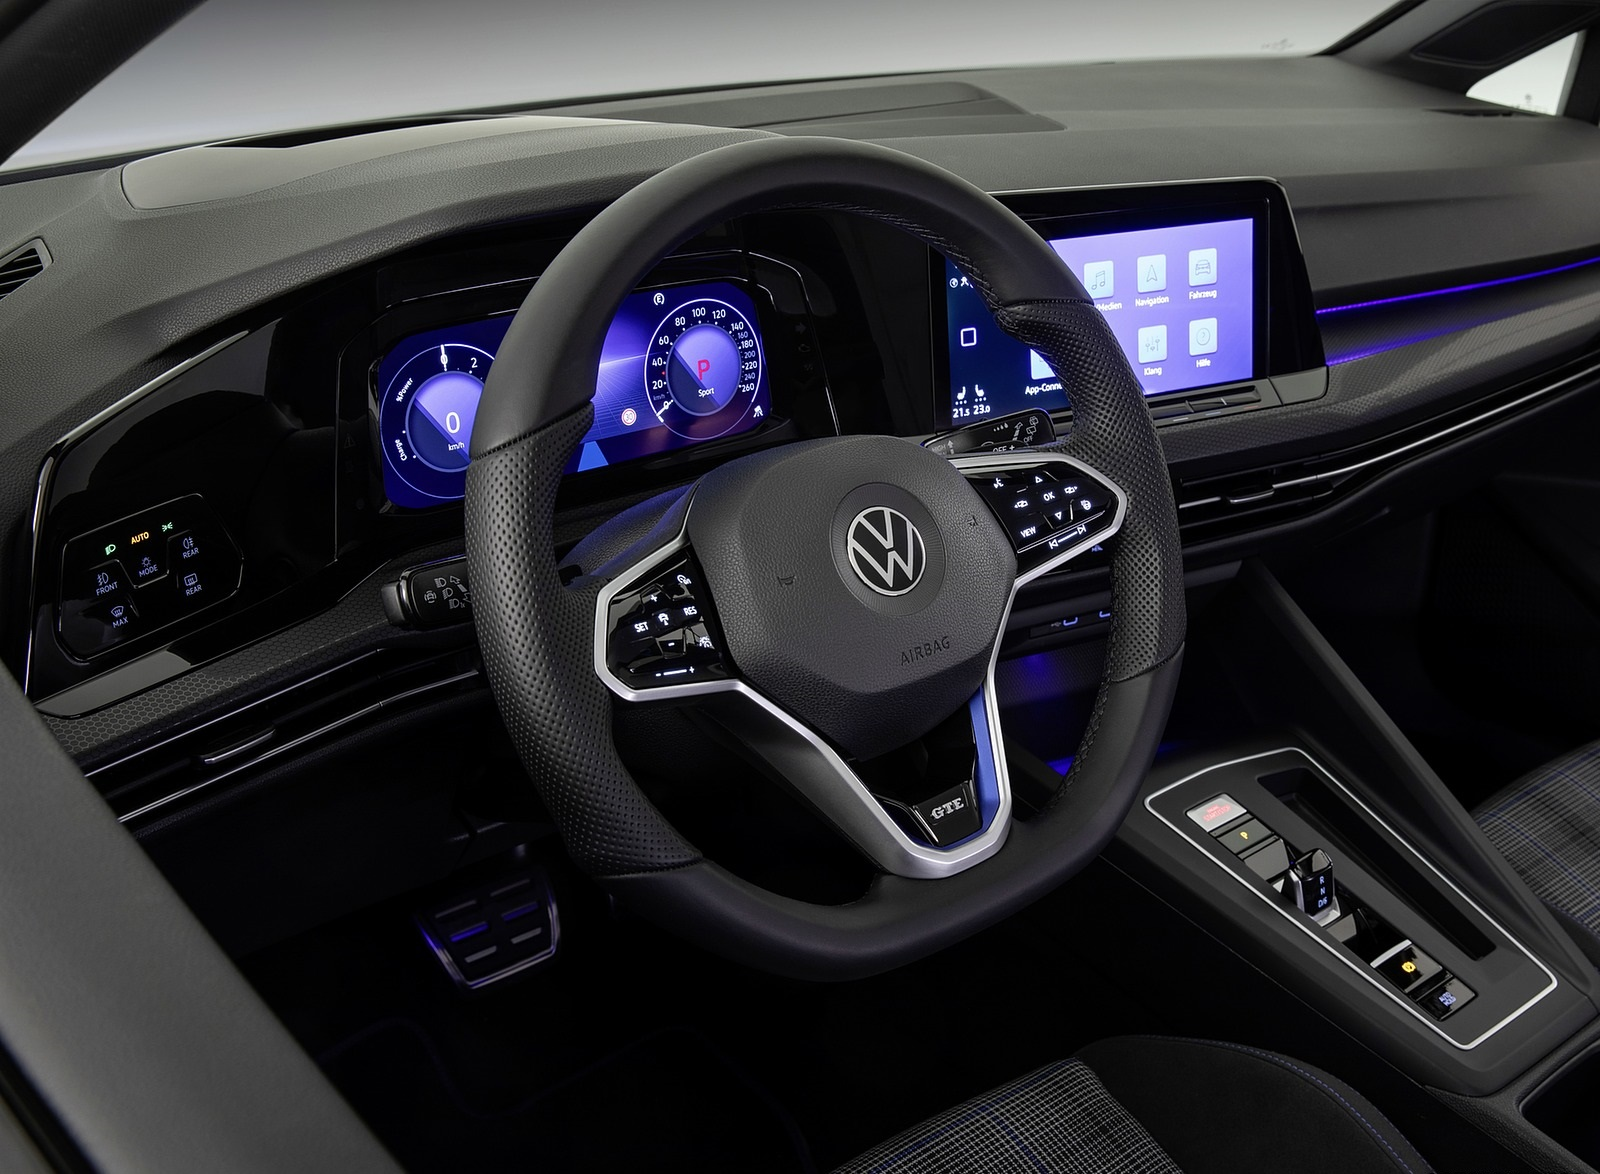 2021 Volkswagen Golf GTE Interior Wallpapers #15 of 16